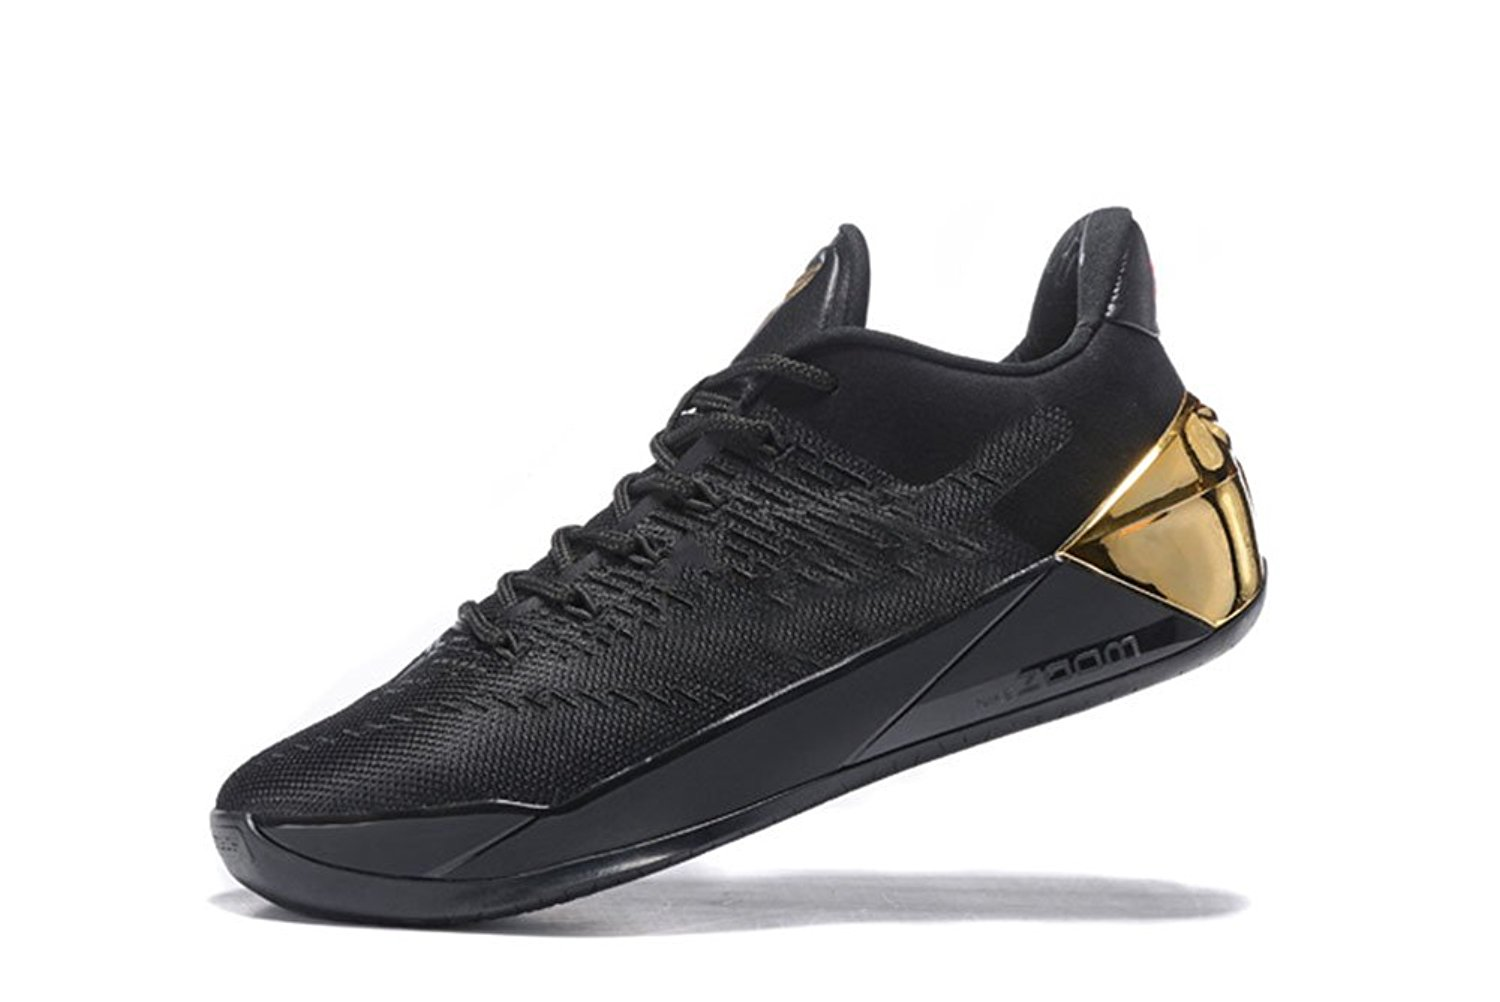 new product eedbe 5c234 Buy Kobe 12 AD Mens Basketball Shoes Low To Help Sports ...